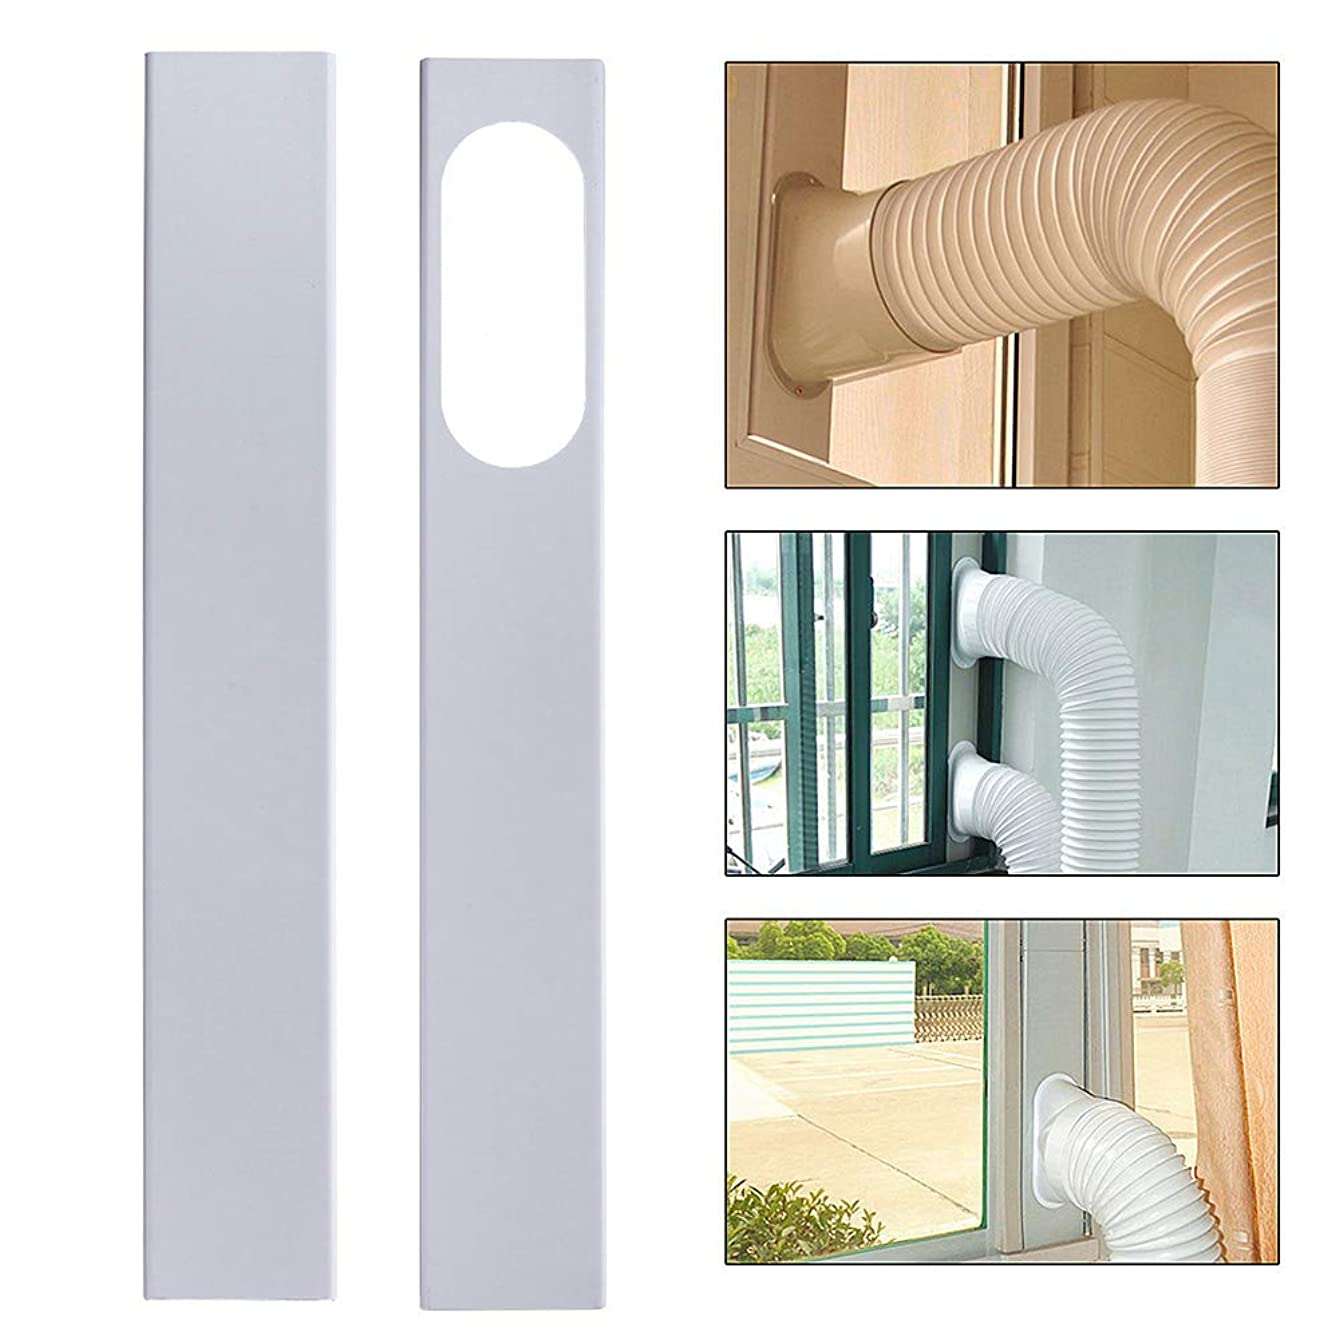 longdelaY6 Air Conditioner Accessories, Window Kit Plate,2Pcs 84-120cm Adjustable Window Slide Kit Plate for Portable Air Conditioner